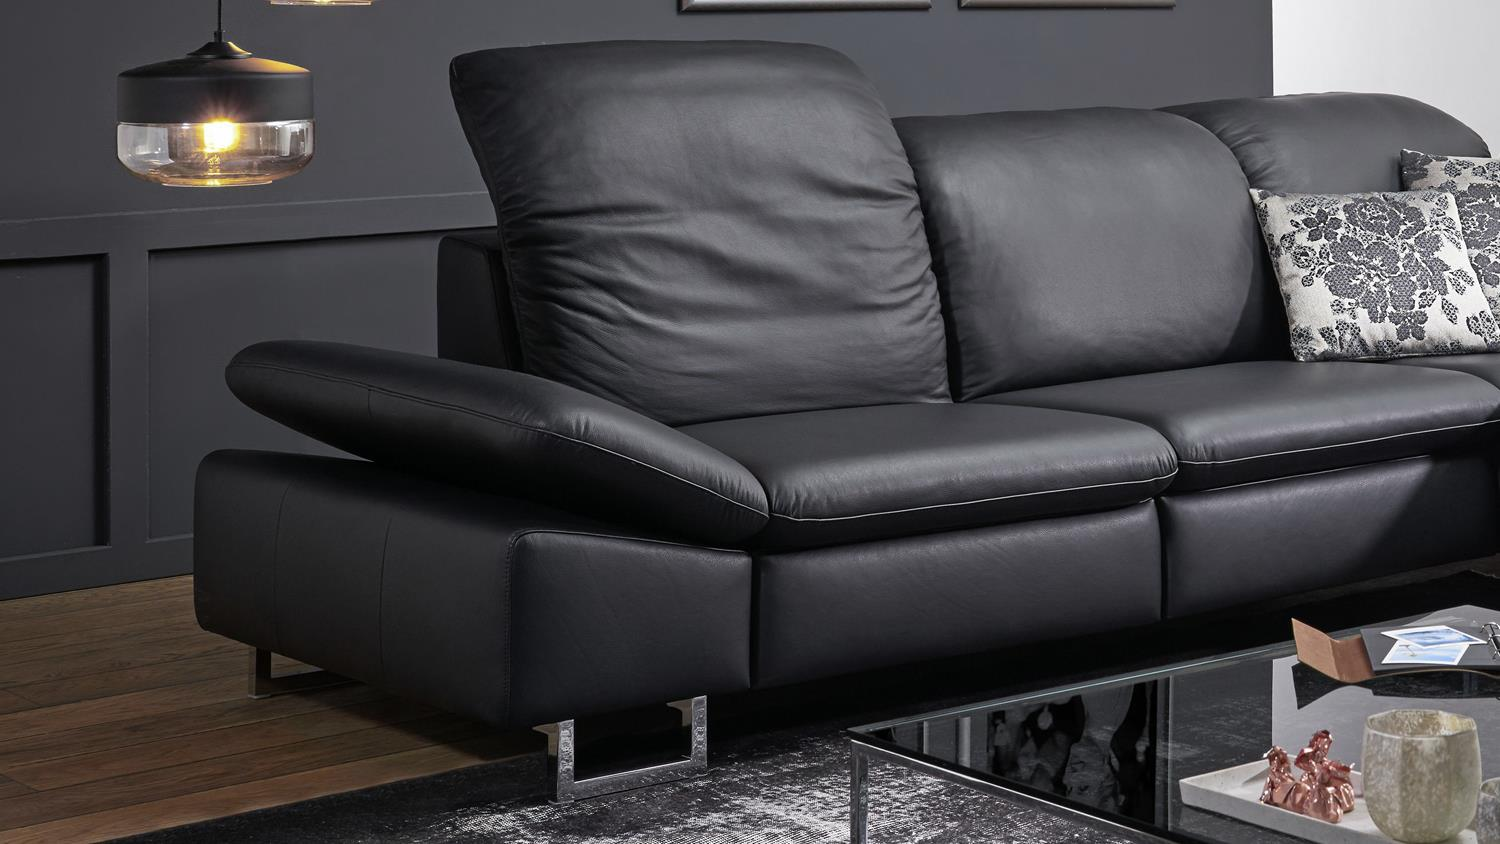 ecksofa enjoy relax bezug leder schwarz f e metall mit nosagfederung. Black Bedroom Furniture Sets. Home Design Ideas